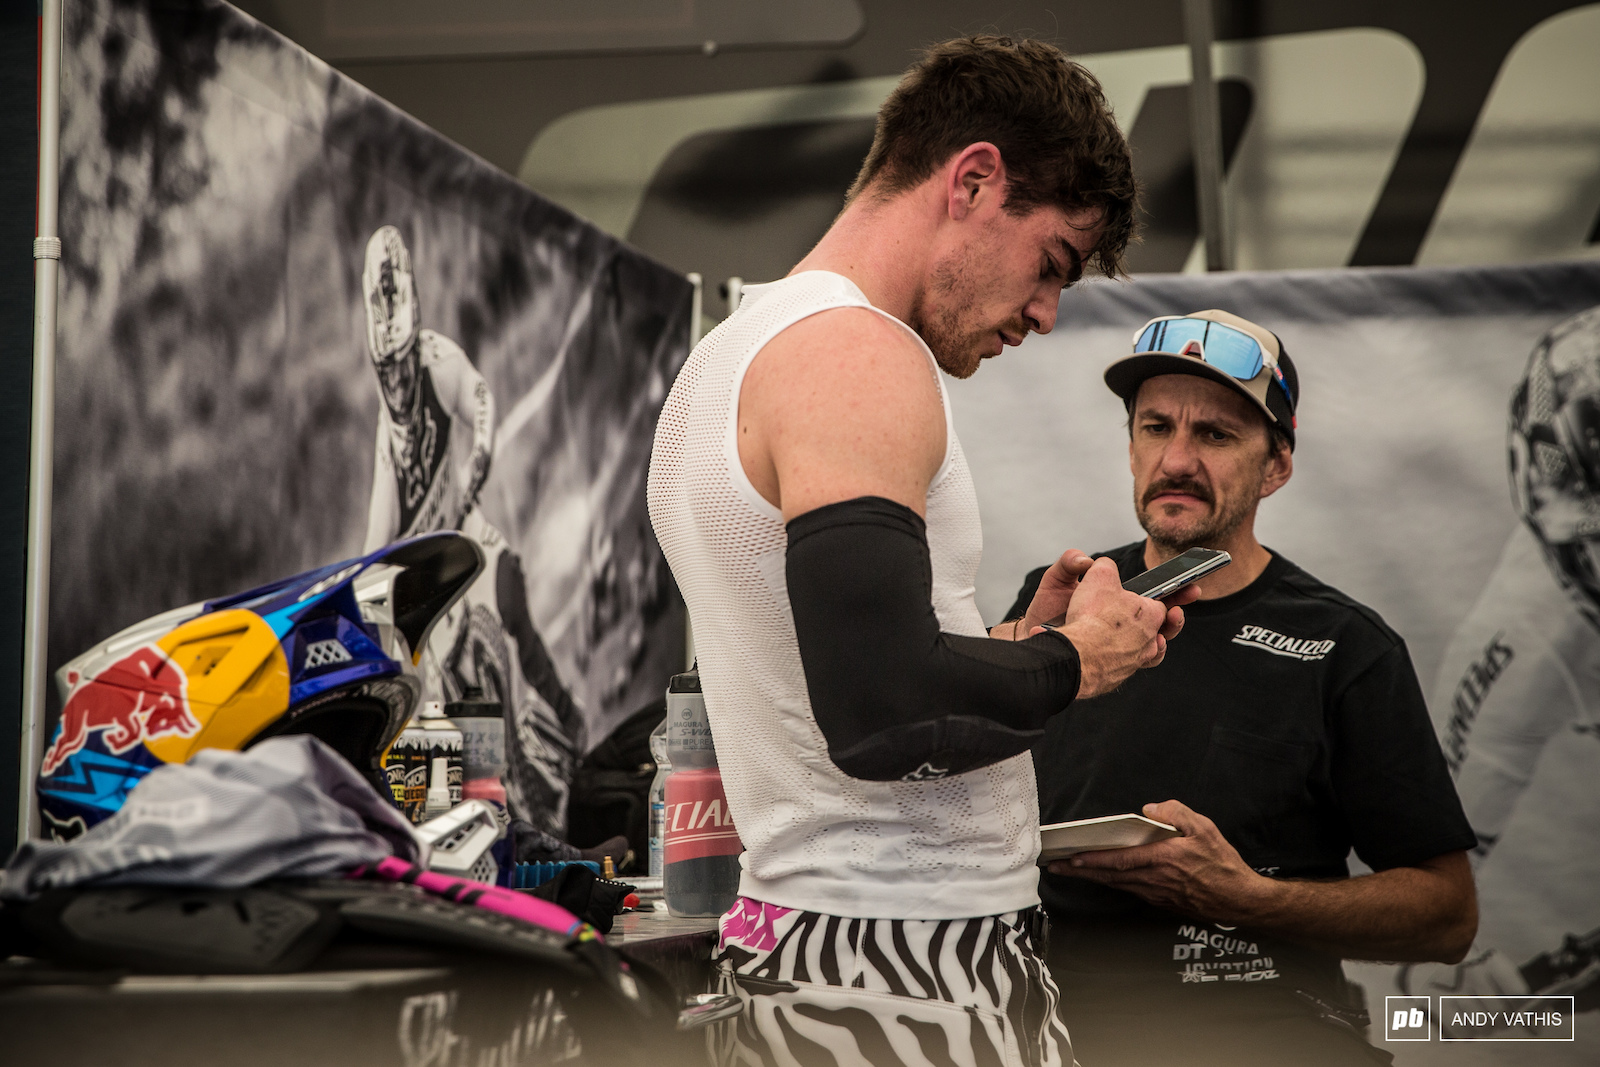 Loic Bruni conducting business on and off the bike.